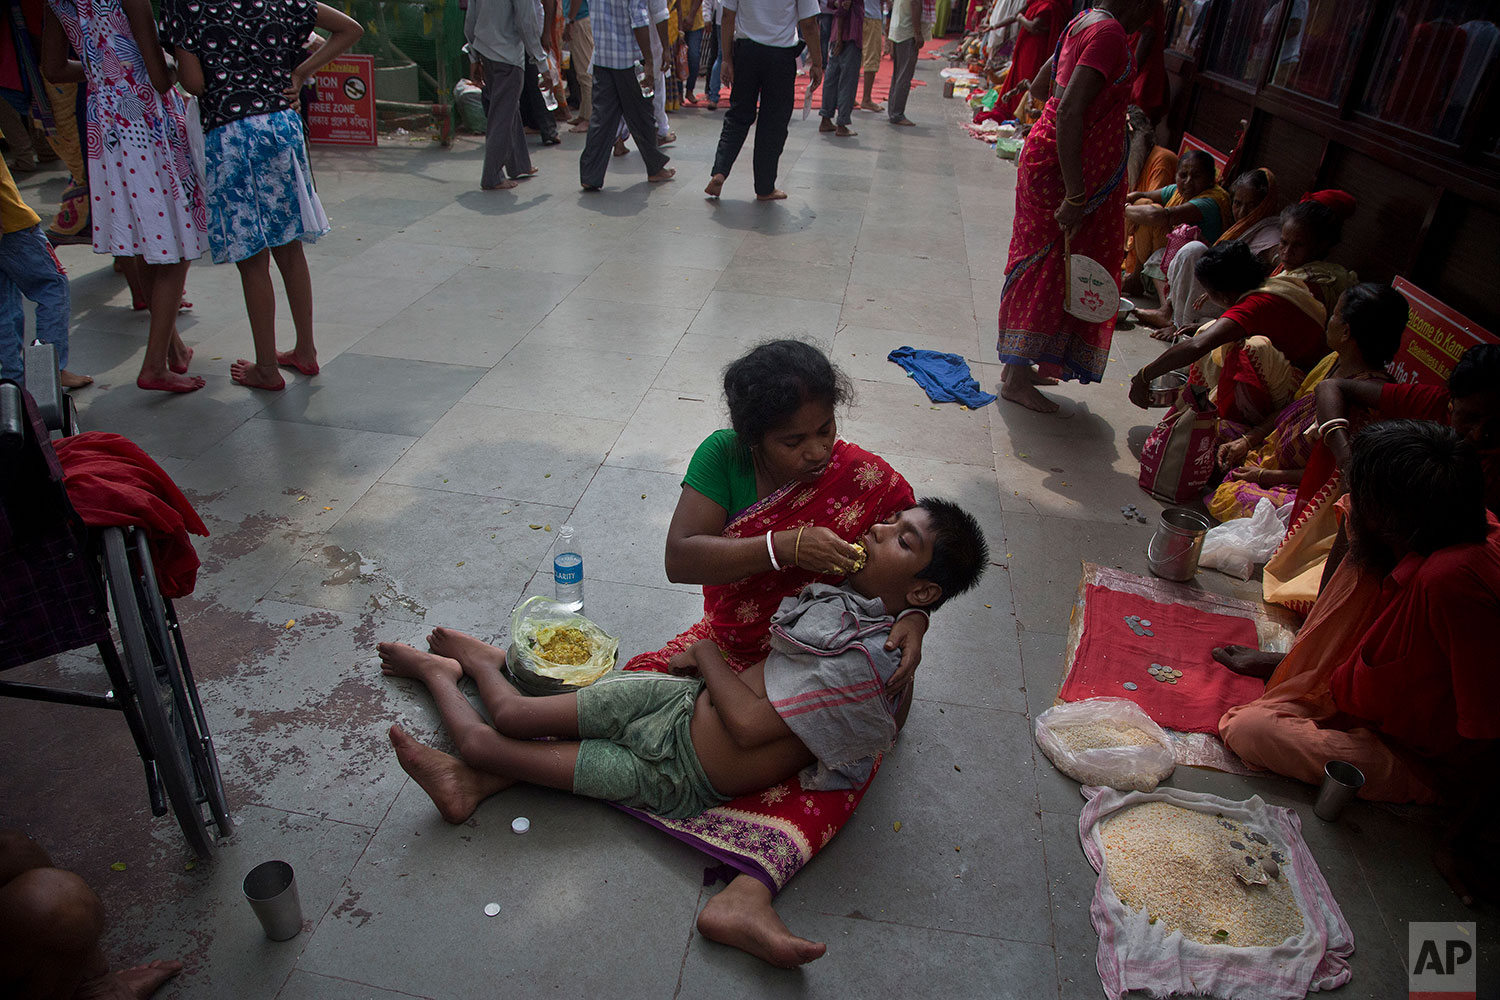 Monika Deb Nath, 45, feeds her son Gopal, 17, at the Kamakhya temple during the Ambubachi festival in Gauhati, India, June 25, 2019 . Monika, 45, and her husband have visited the Kamakhya temple four years in a row for the annual Ambubachi festival, praying for a miracle to heal their son from cerebral palsy, which has left him with almost no control over his own body. The temple is presided over by the goddess Kamakhya, the most important goddess of tantric worship, an esoteric form of Hinduism.(AP Photo/Anupam Nath)